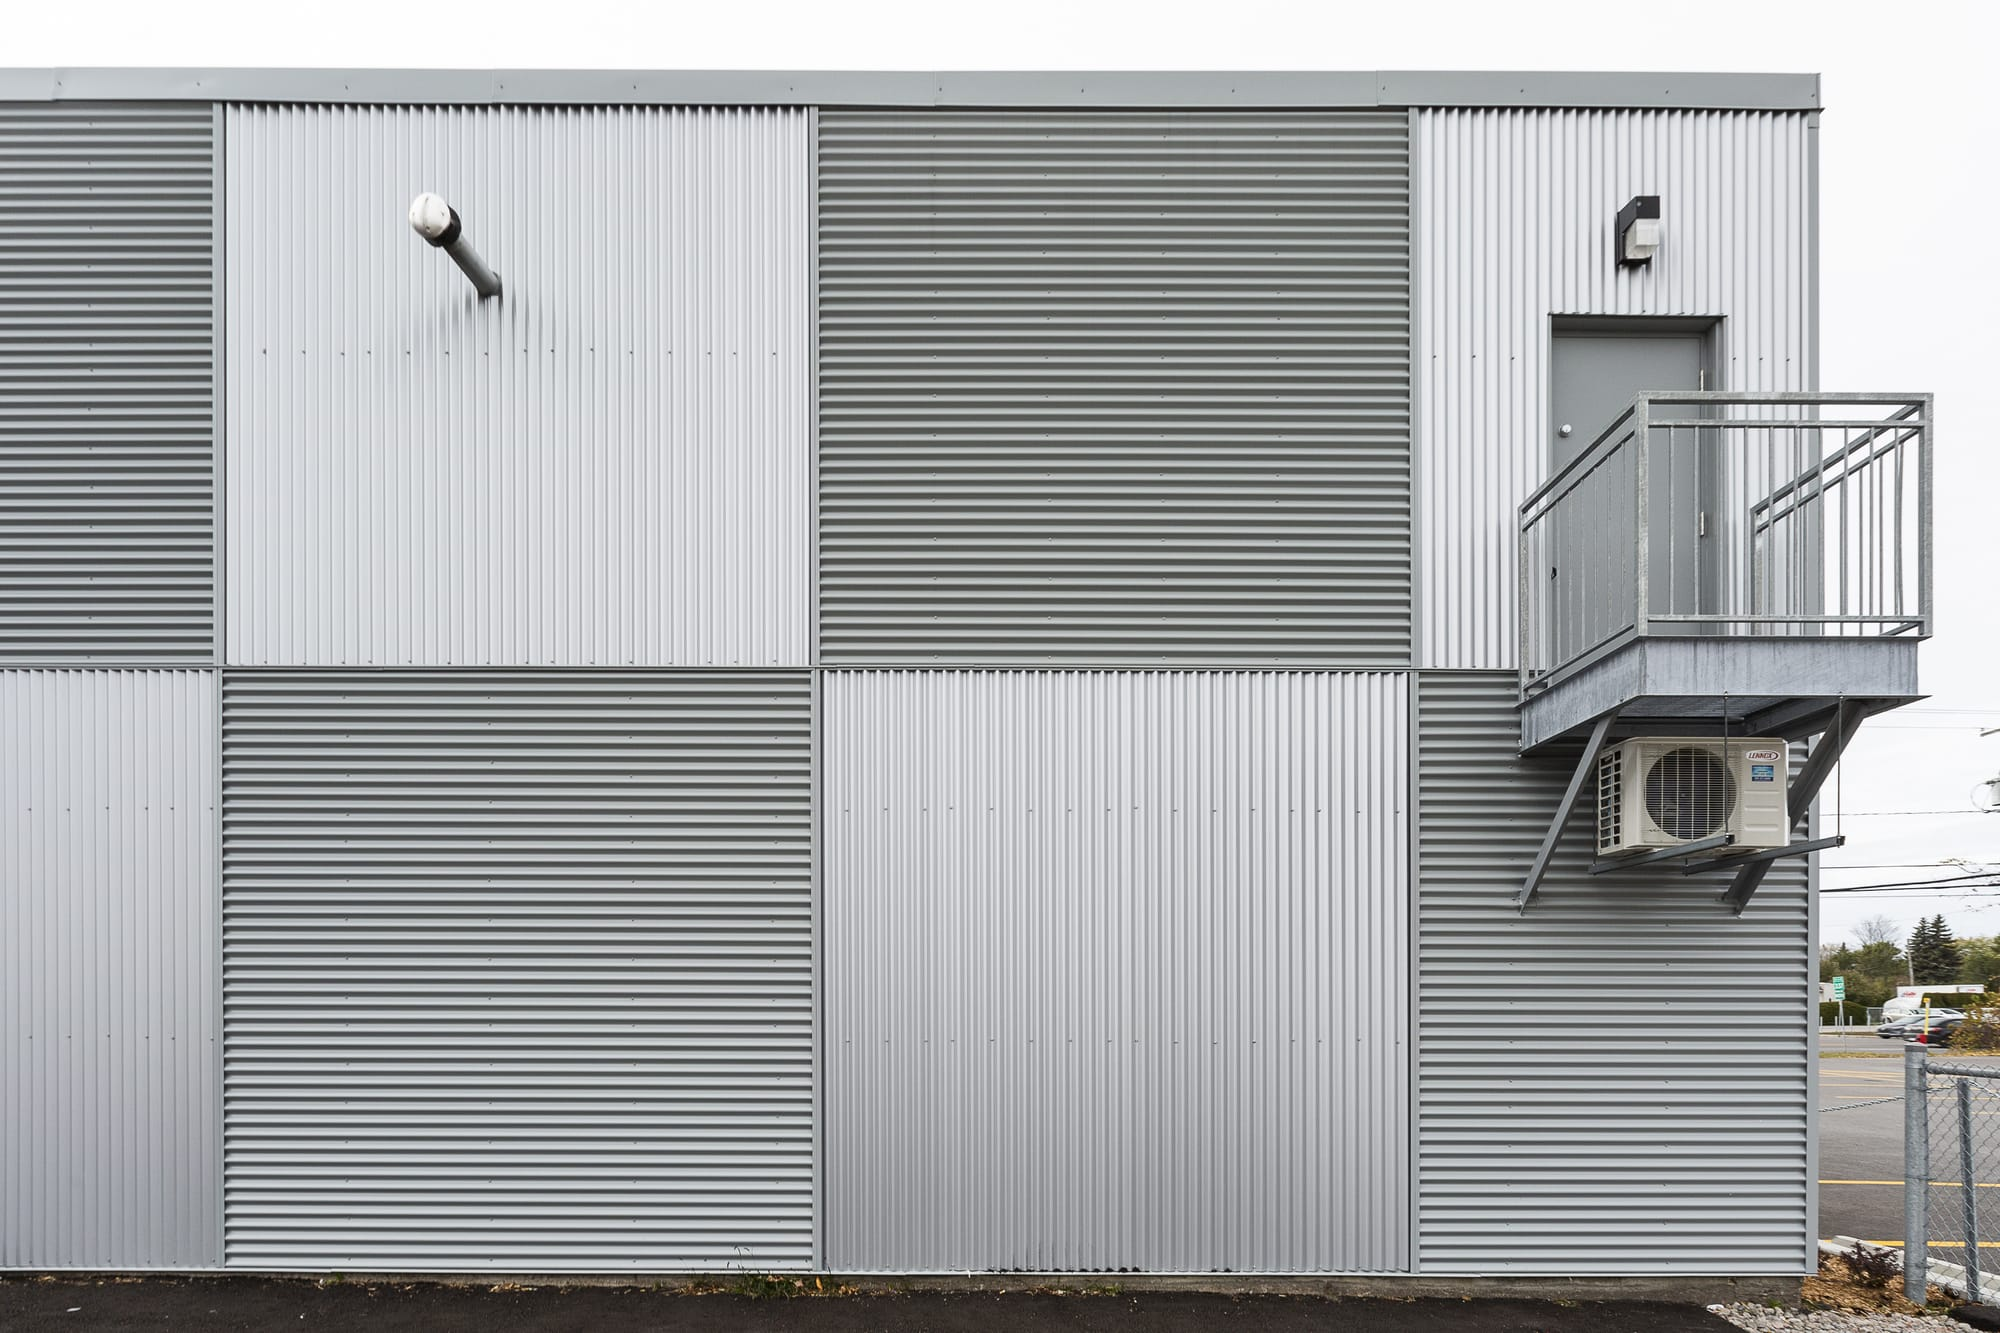 metal cladding - rear view of a commercial building